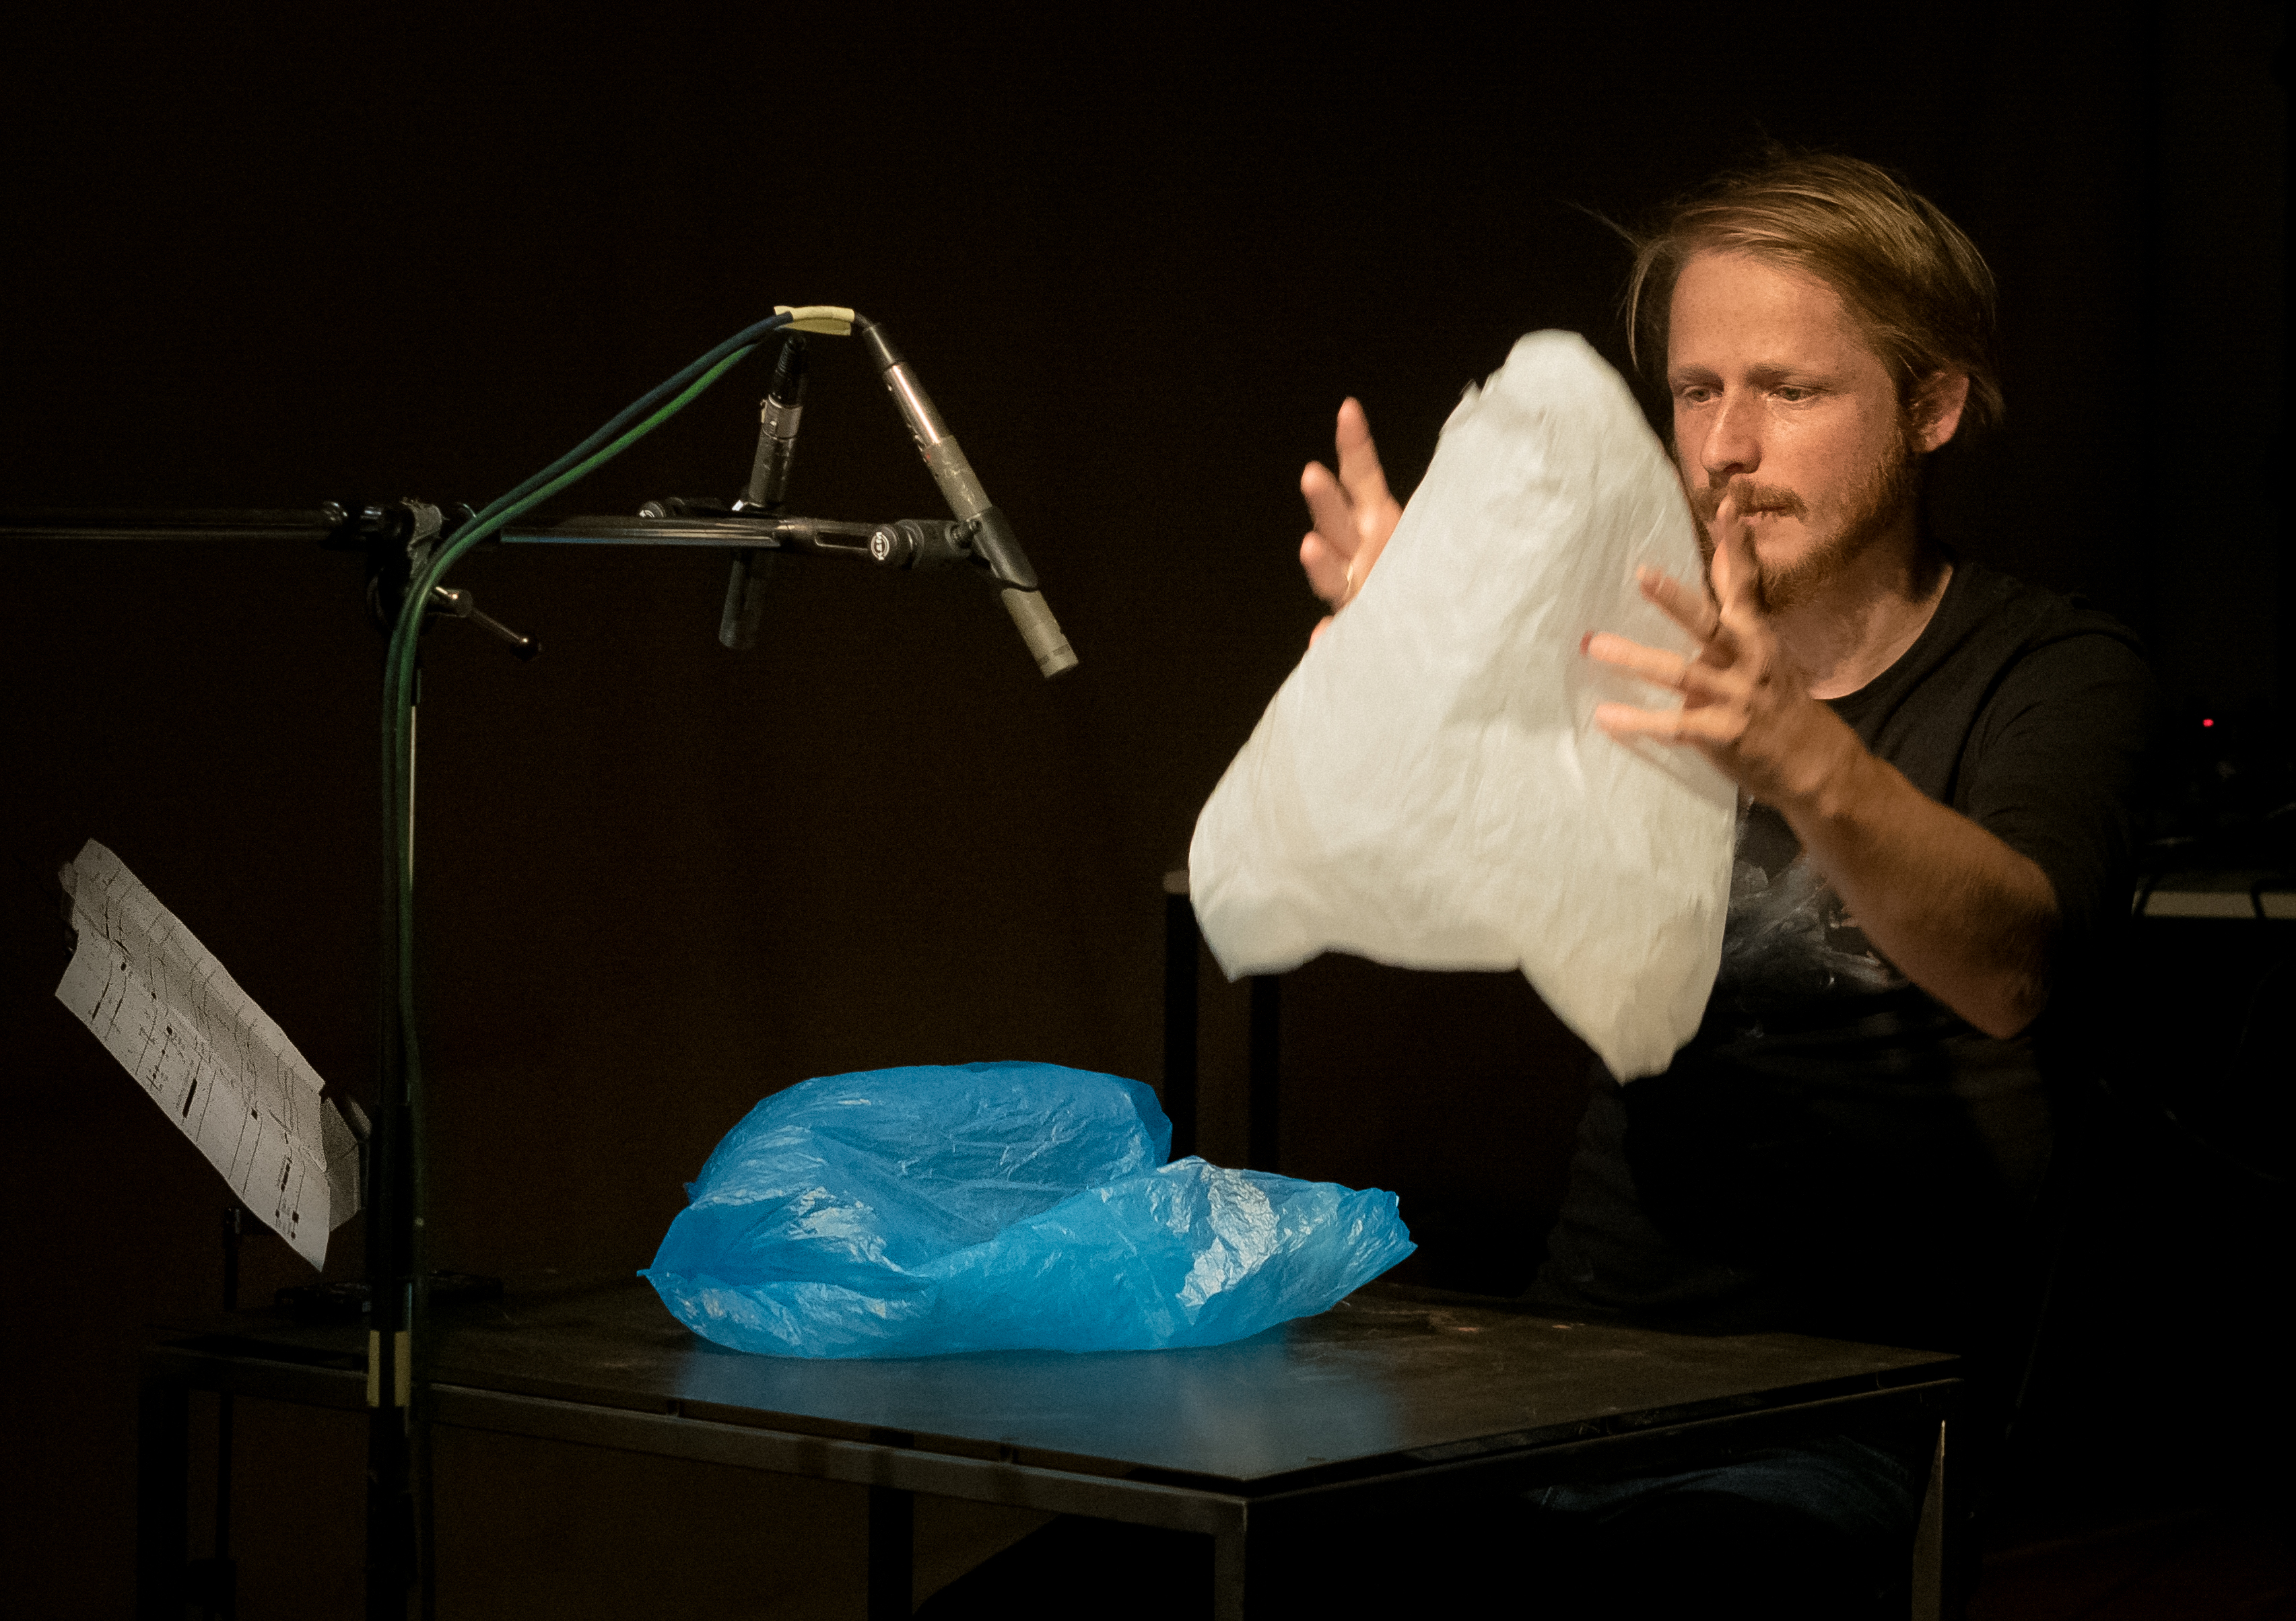 Igor Gross performing 'Plastic Bag Music' 27.9.2018 @ echoraum / Wien [première]